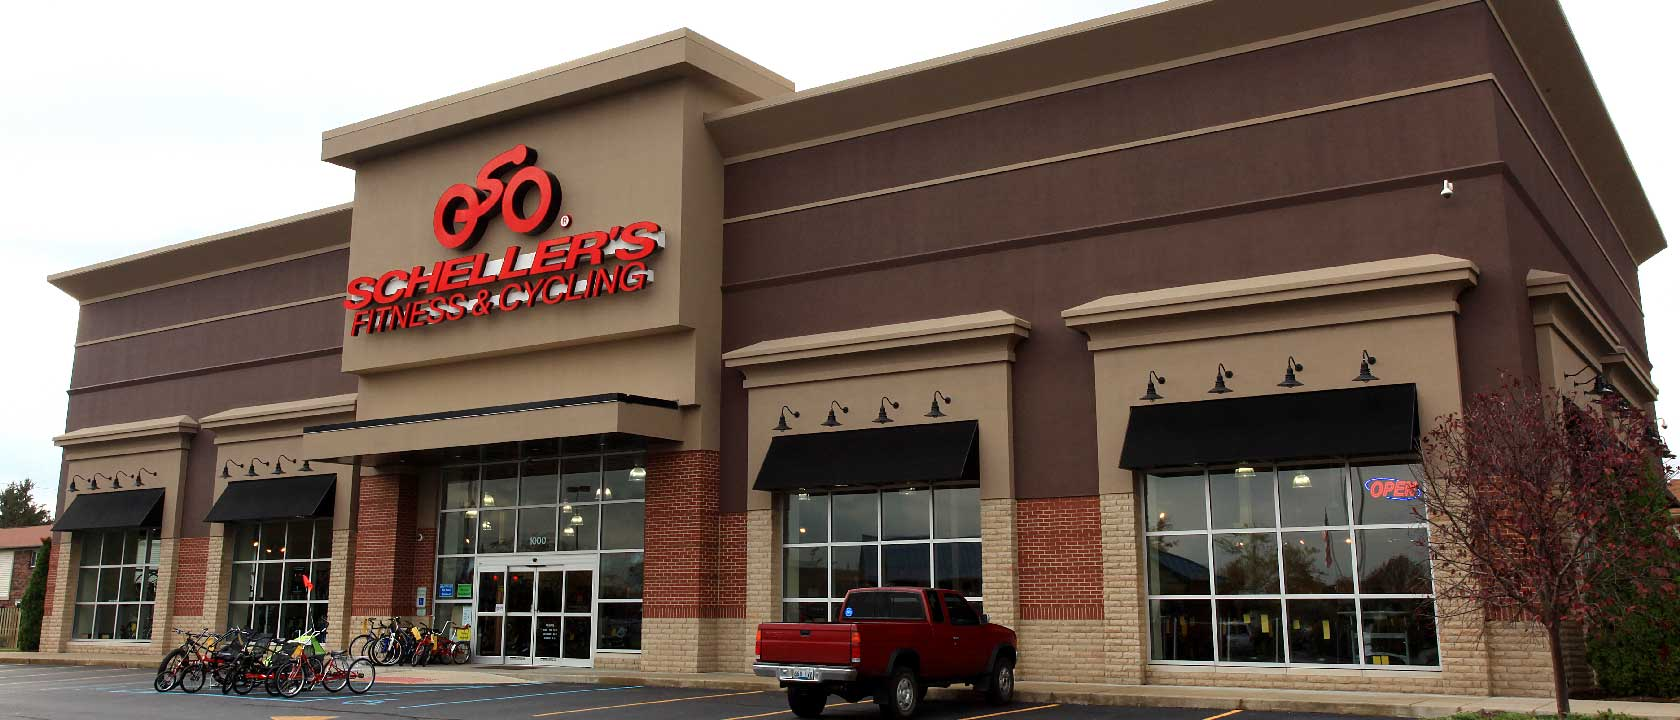 Commercial Painting in Louisville | HF Steilberg, Professional Painters | Schellers Fitness & Cycling exterior commercial painting project